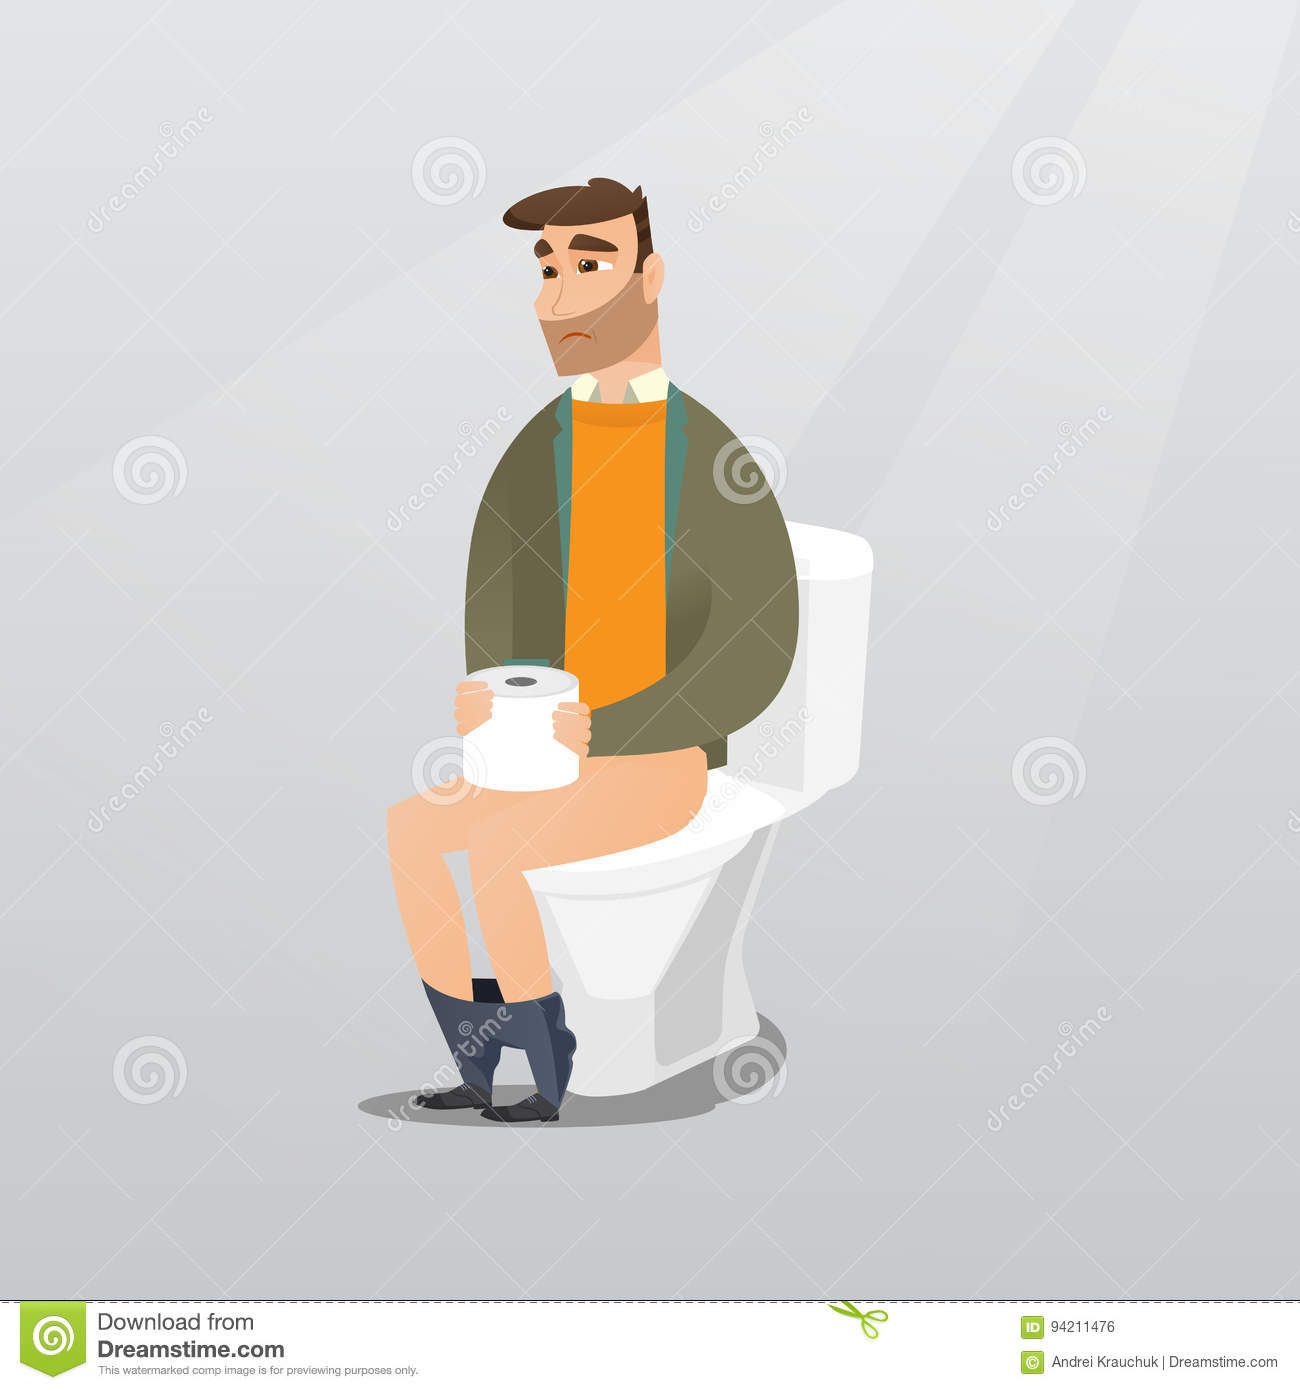 Constipated Cartoons Illustrations Vector Stock Images